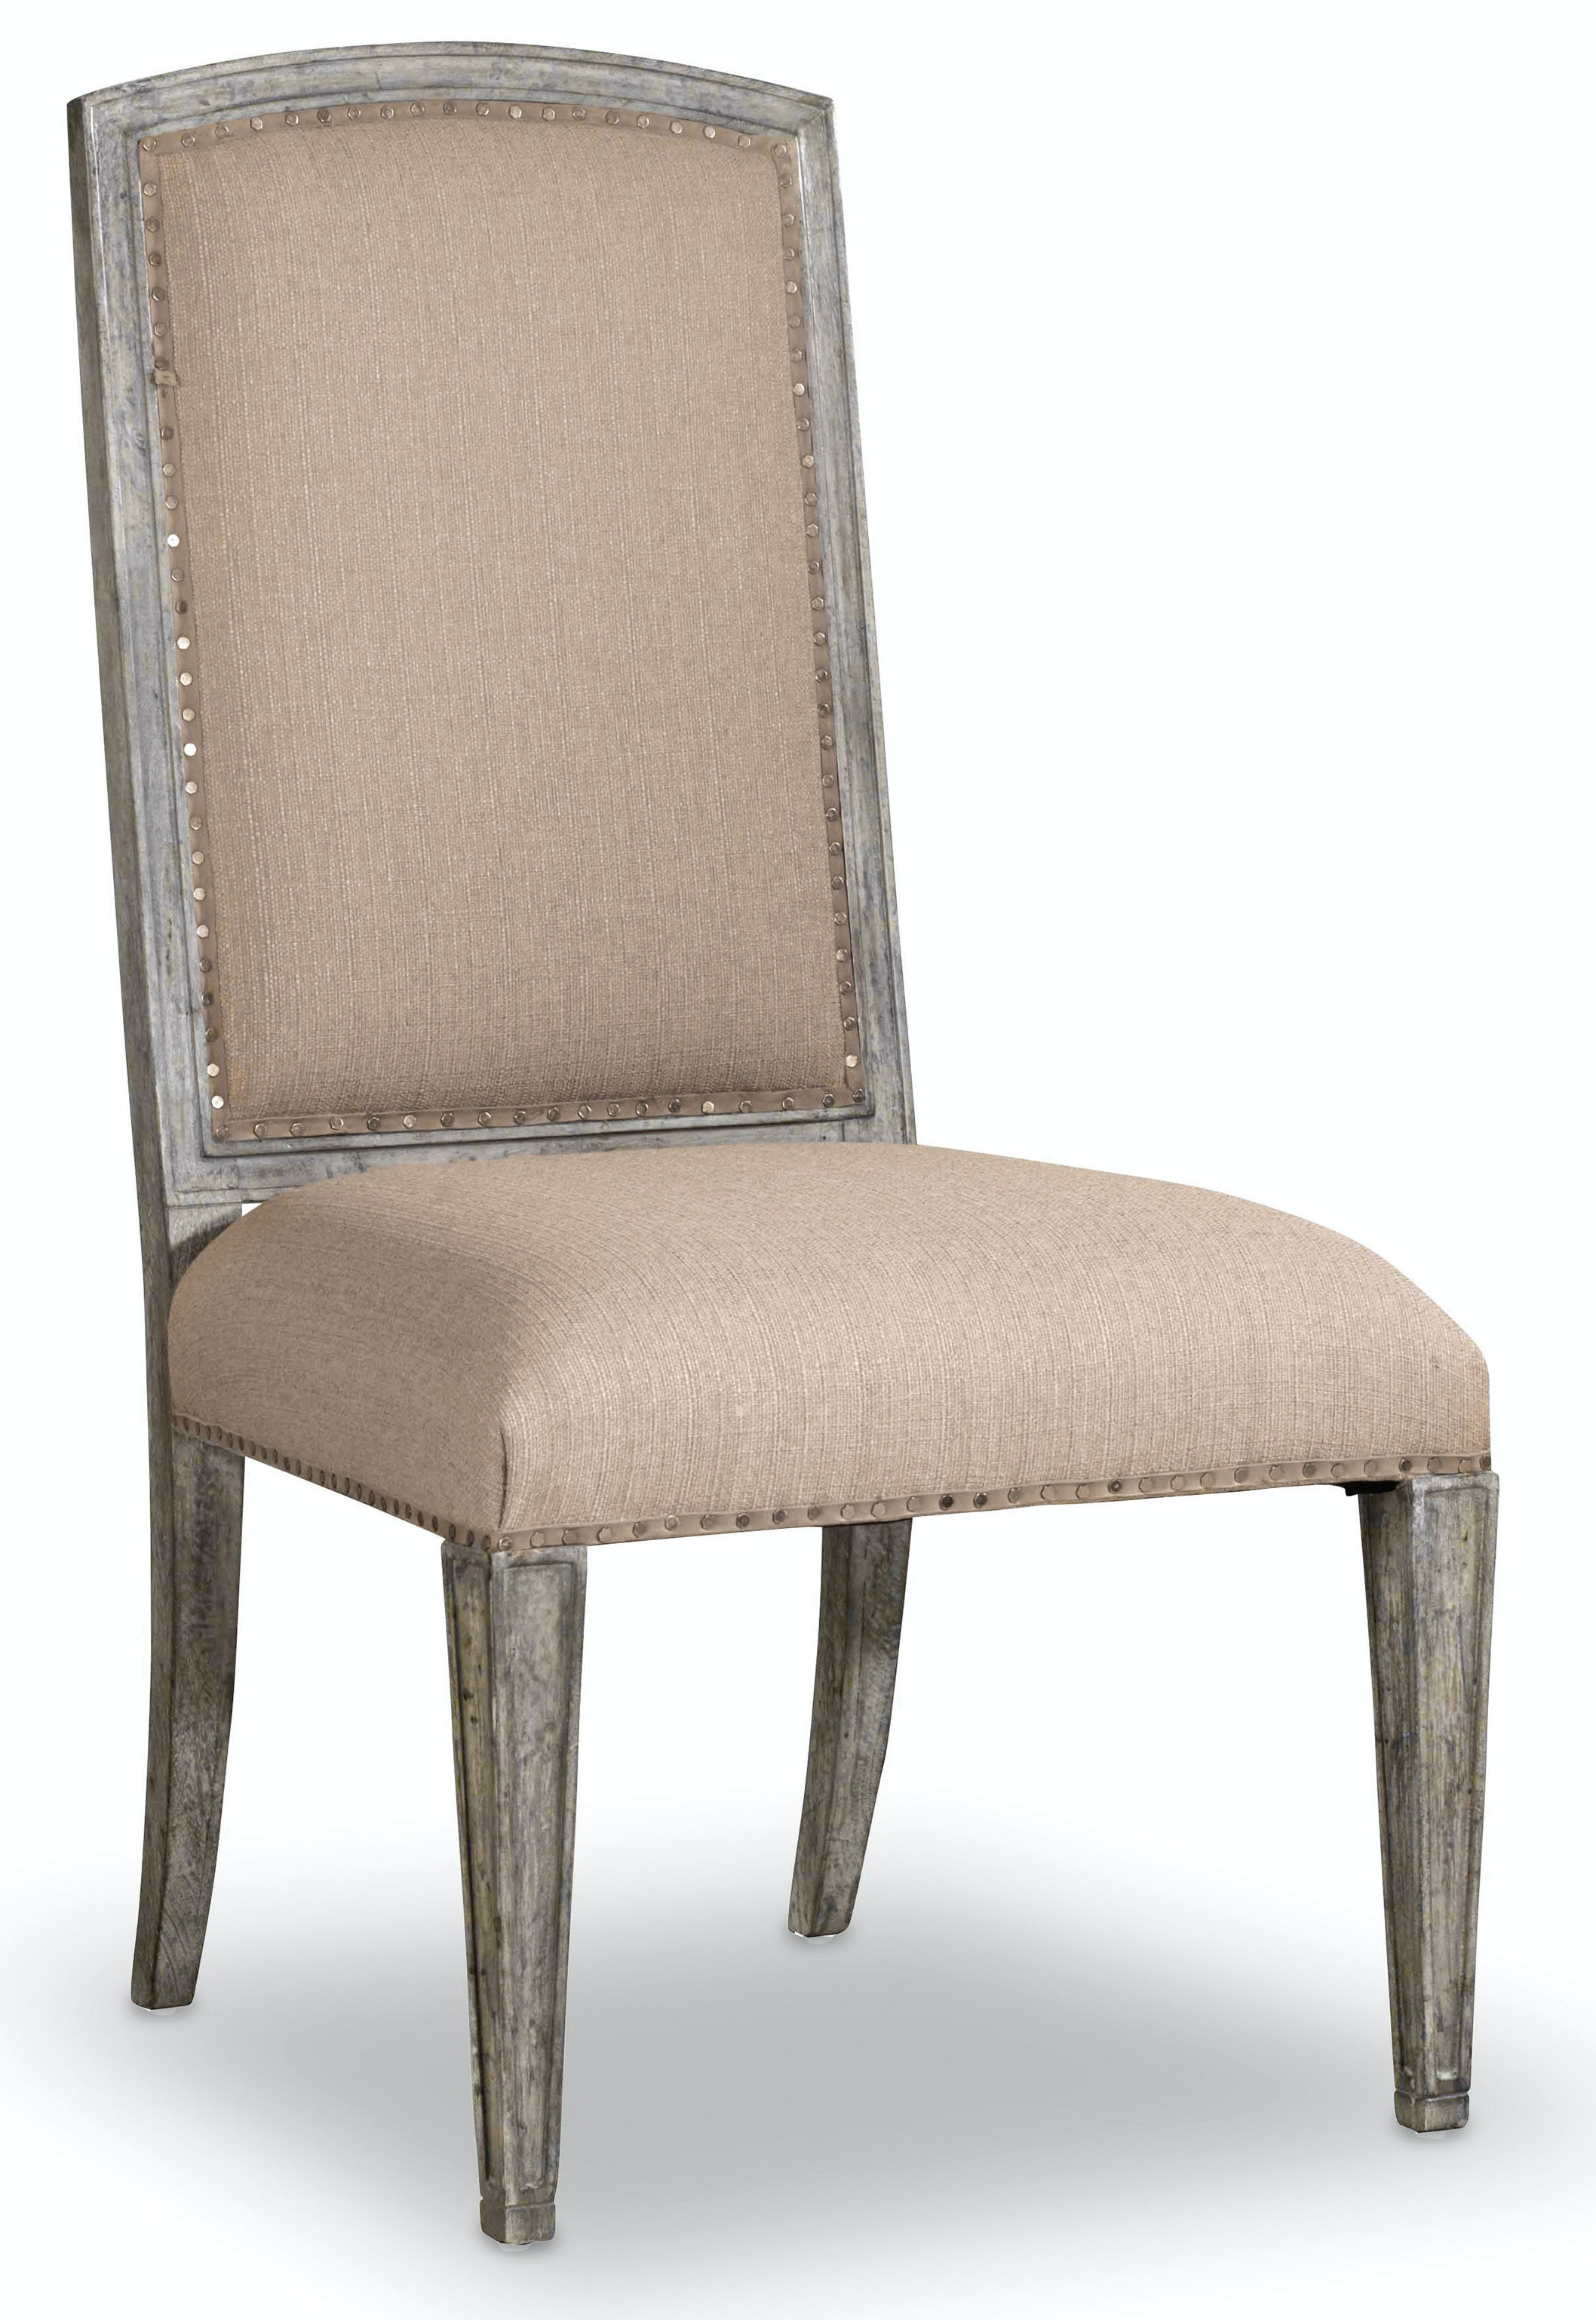 upholstered dining chairs canada aniline leather lounge chair and ottoman hooker furniture room true vintage side